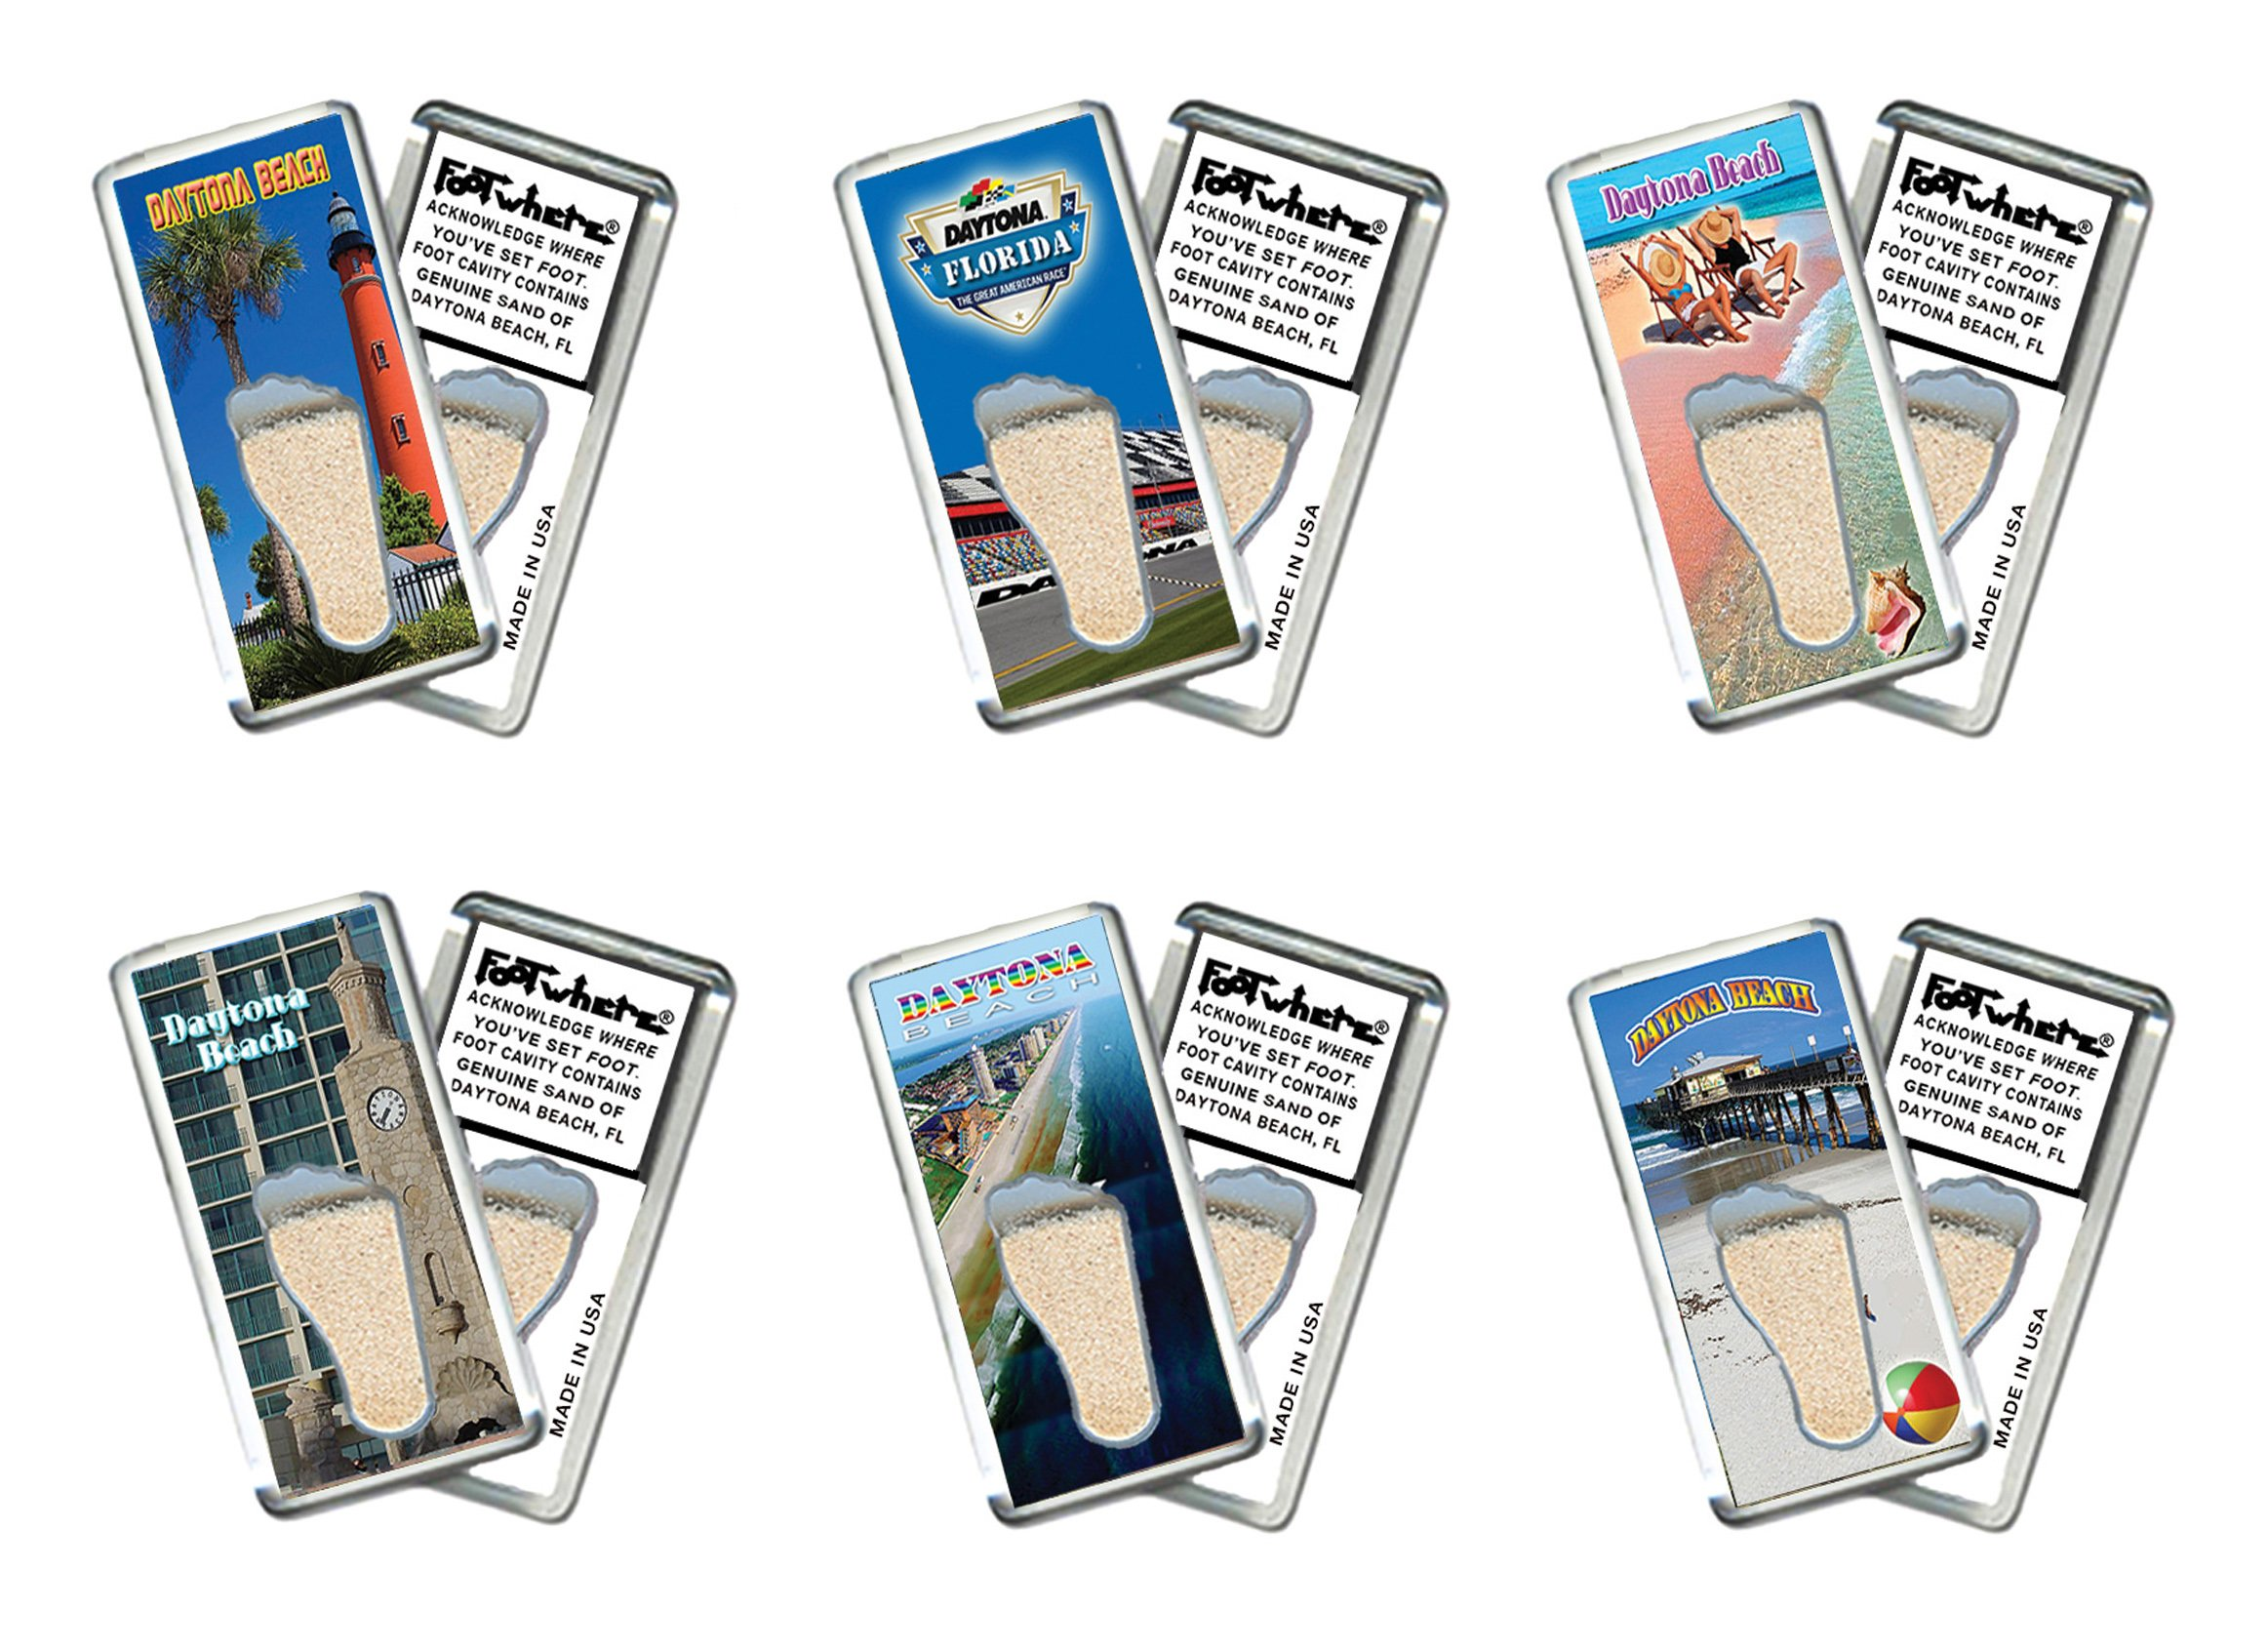 Daytona Beach FootWhere Fridge Magnets. 6 Piece Set. Authentic destination souvenir acknowledging where you've set foot. Genuine soil of featured location encased inside foot cavity. Made in USA